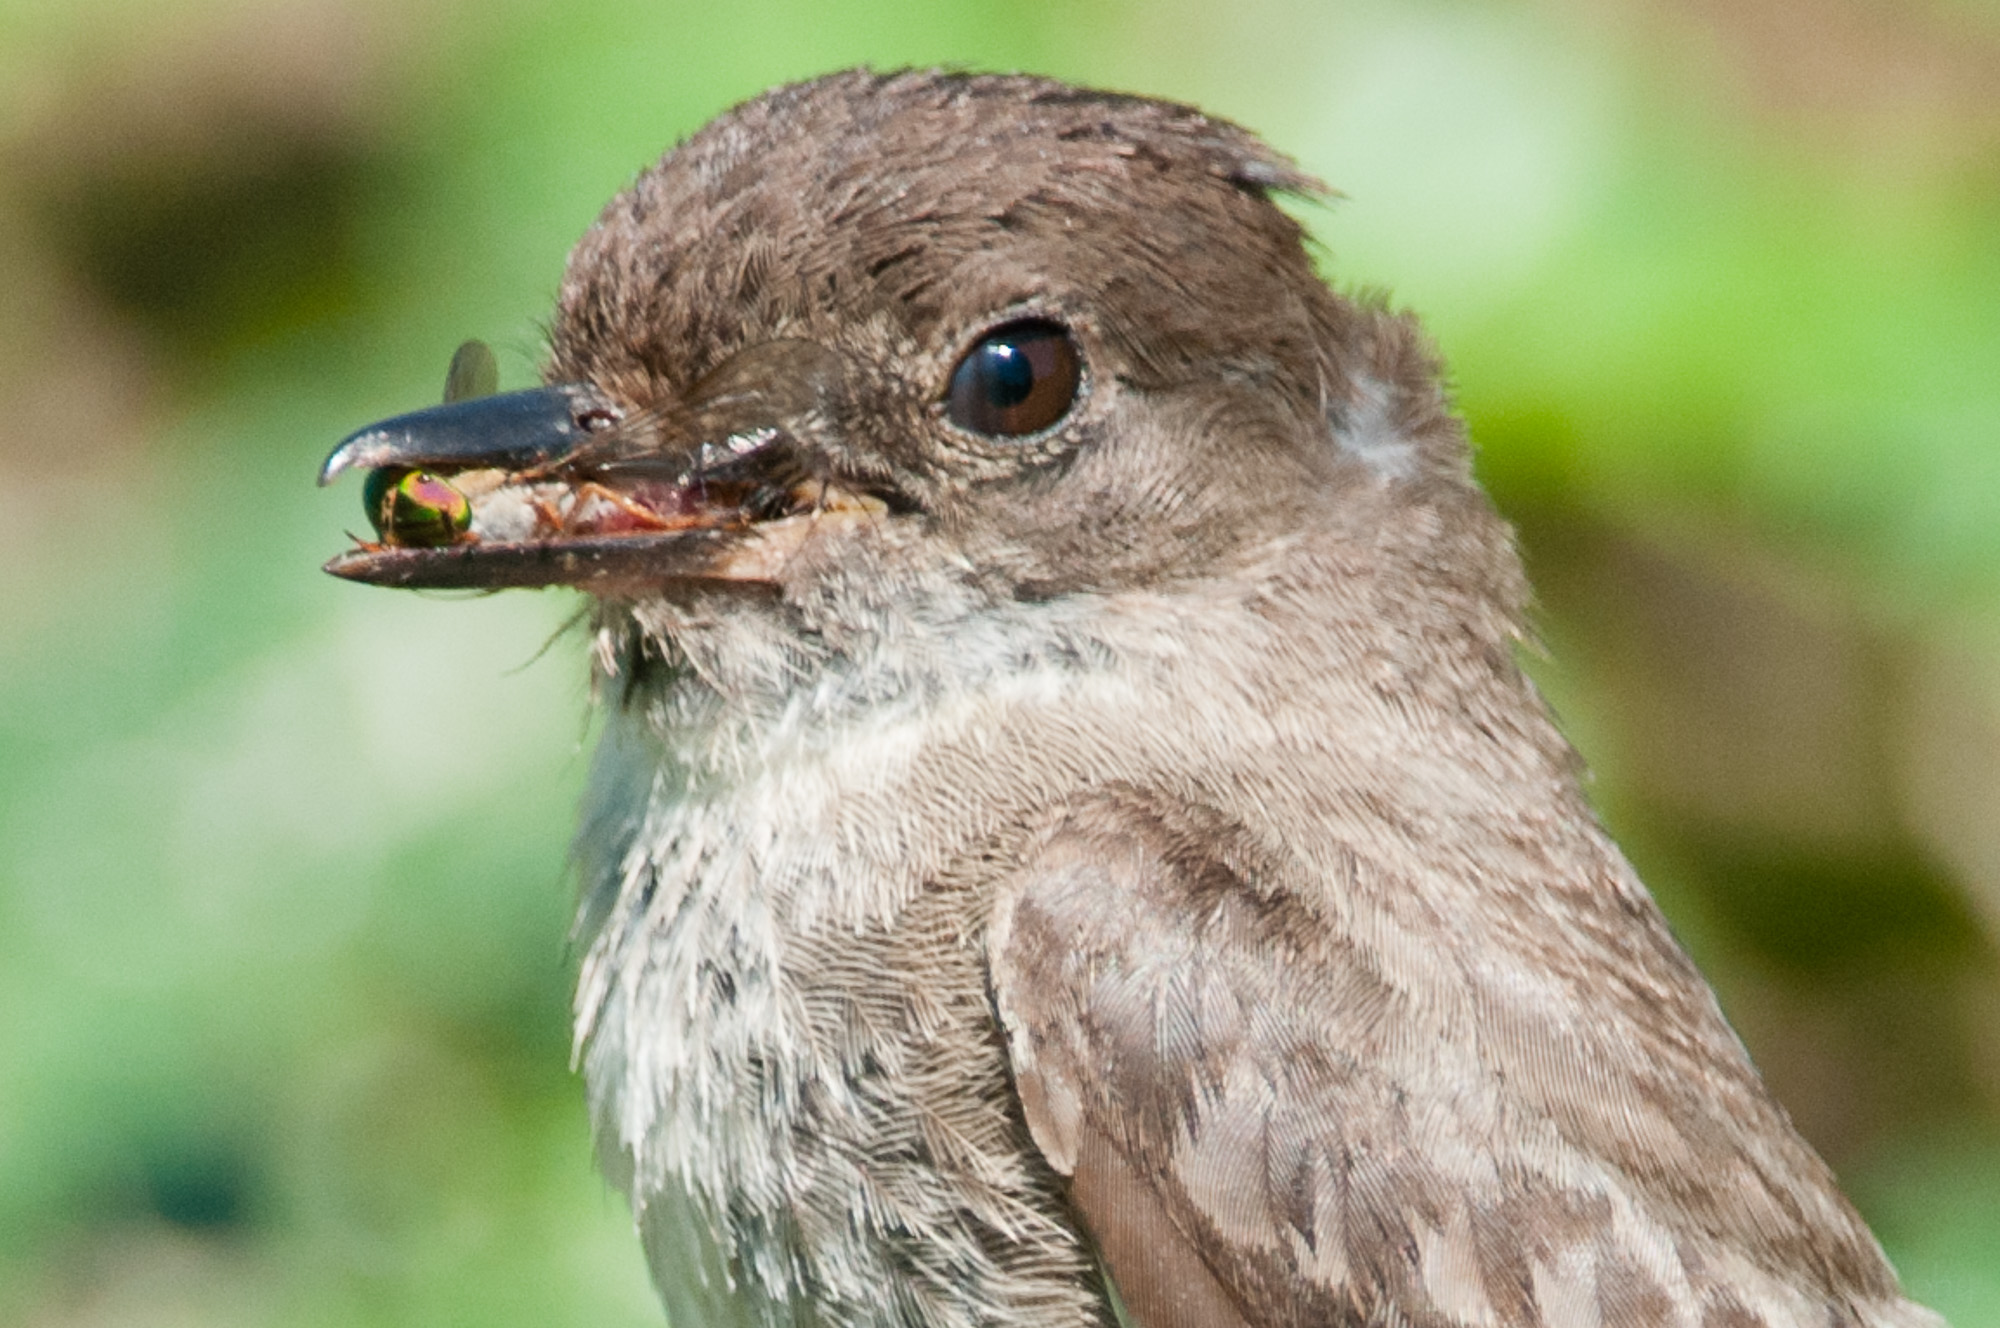 Small portion of third eyelid showing on Eastern Phoebe.